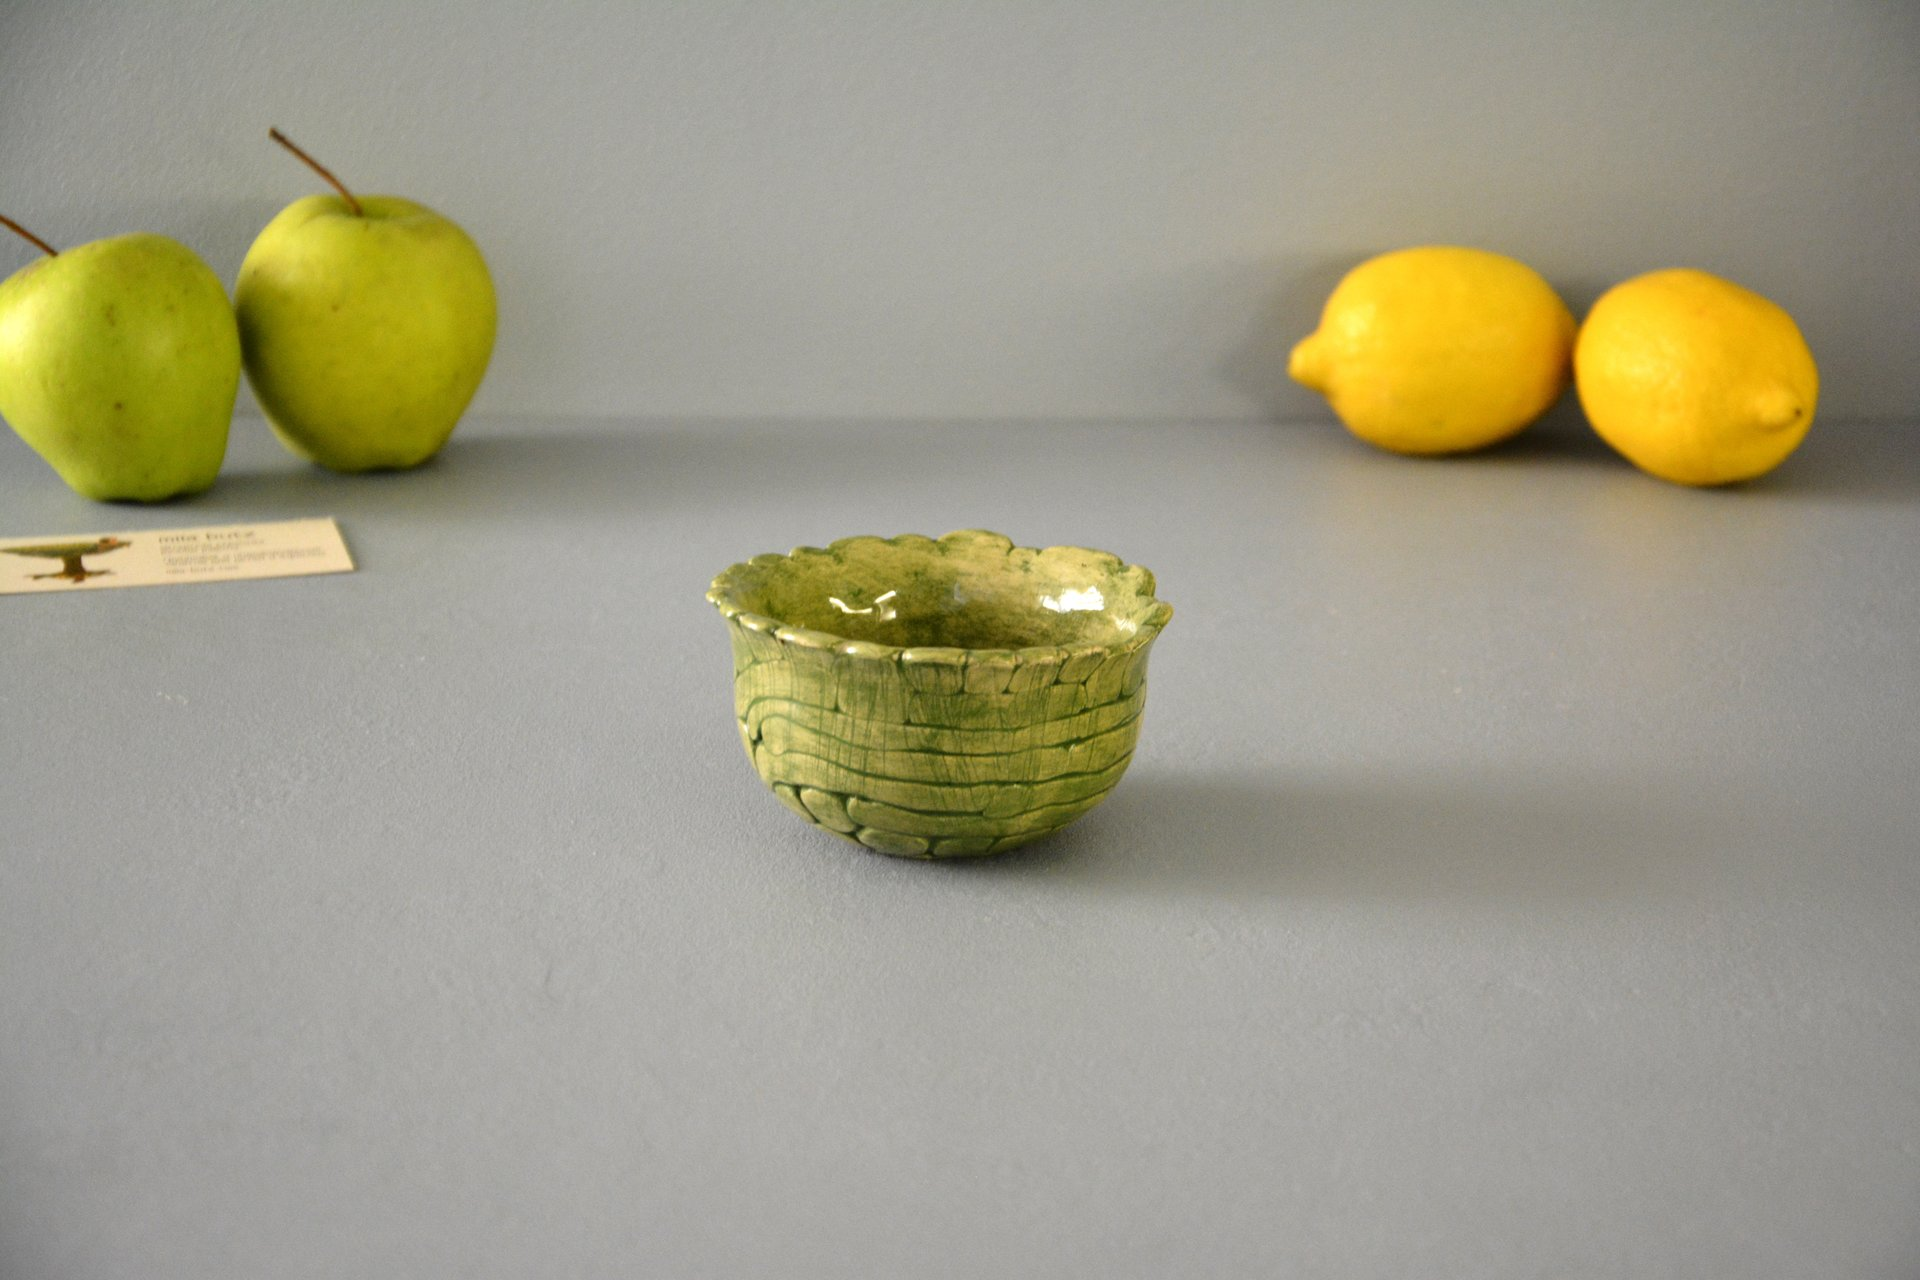 Green patina - Pialy and sauceboats, height - 5,5 cm, diameter - 10 cm, photo 3 of 3.